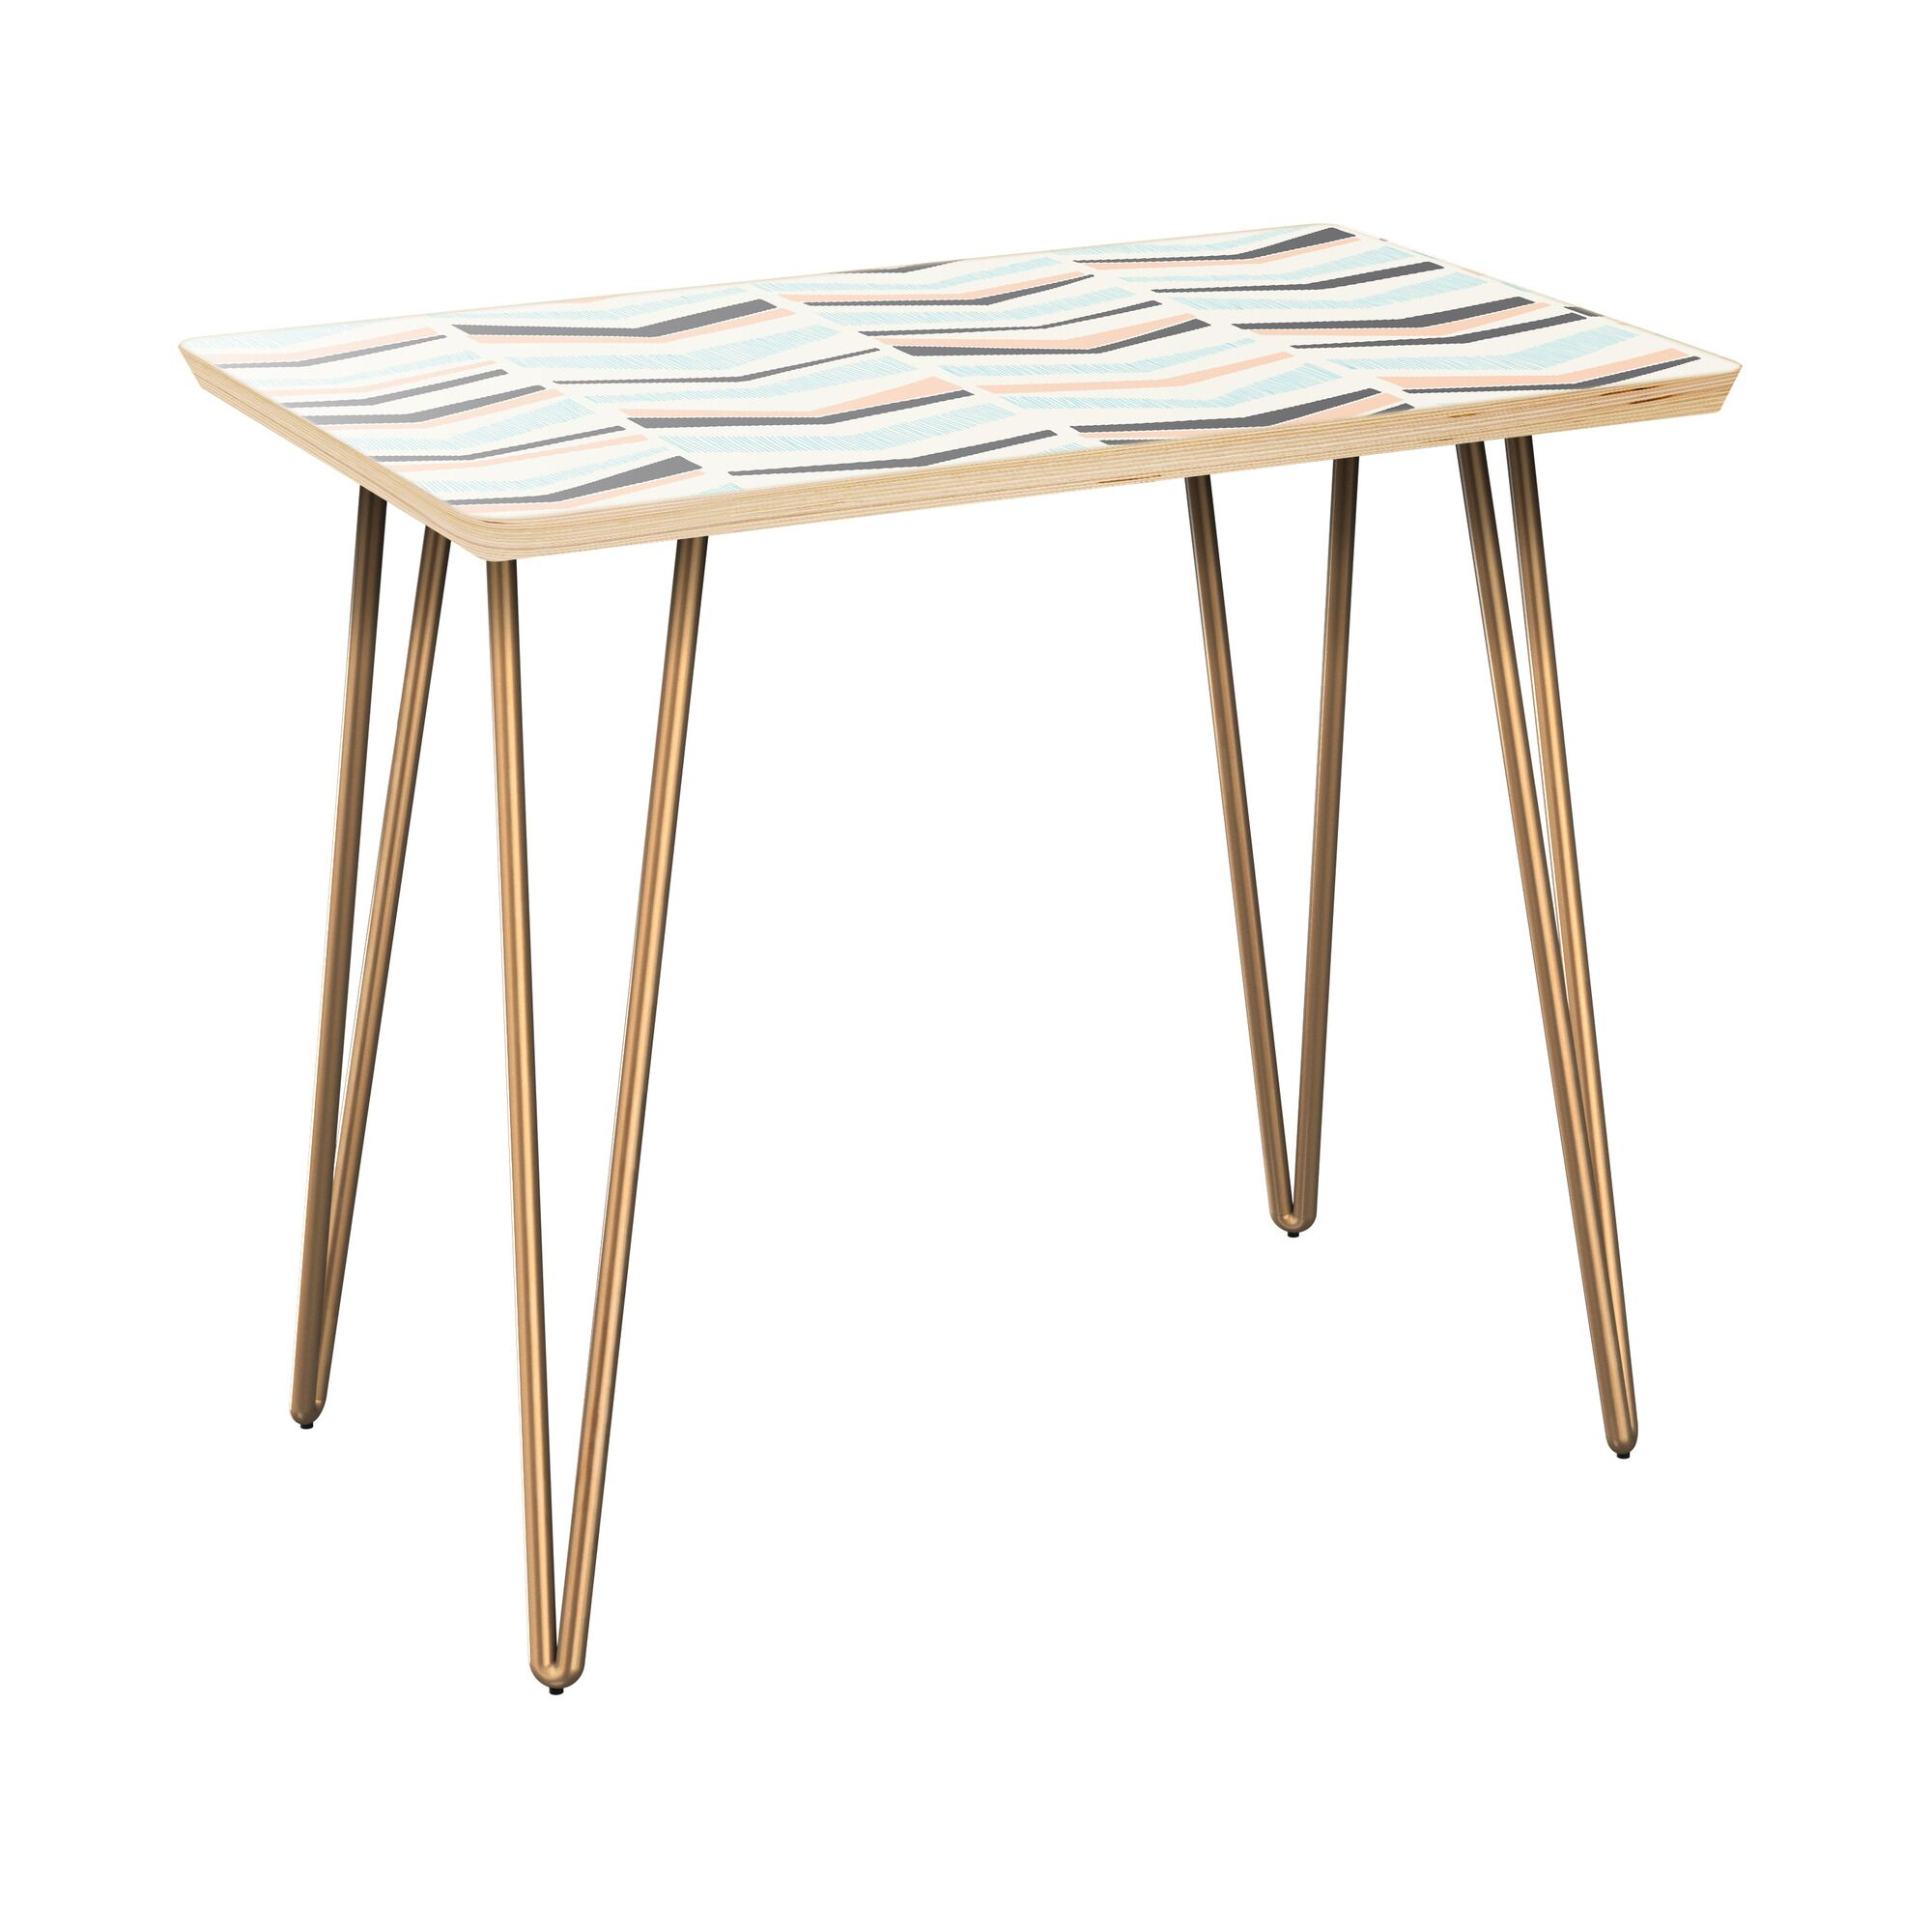 Everhart End Table Table Base Color: Brass, Table Top Color: Natural